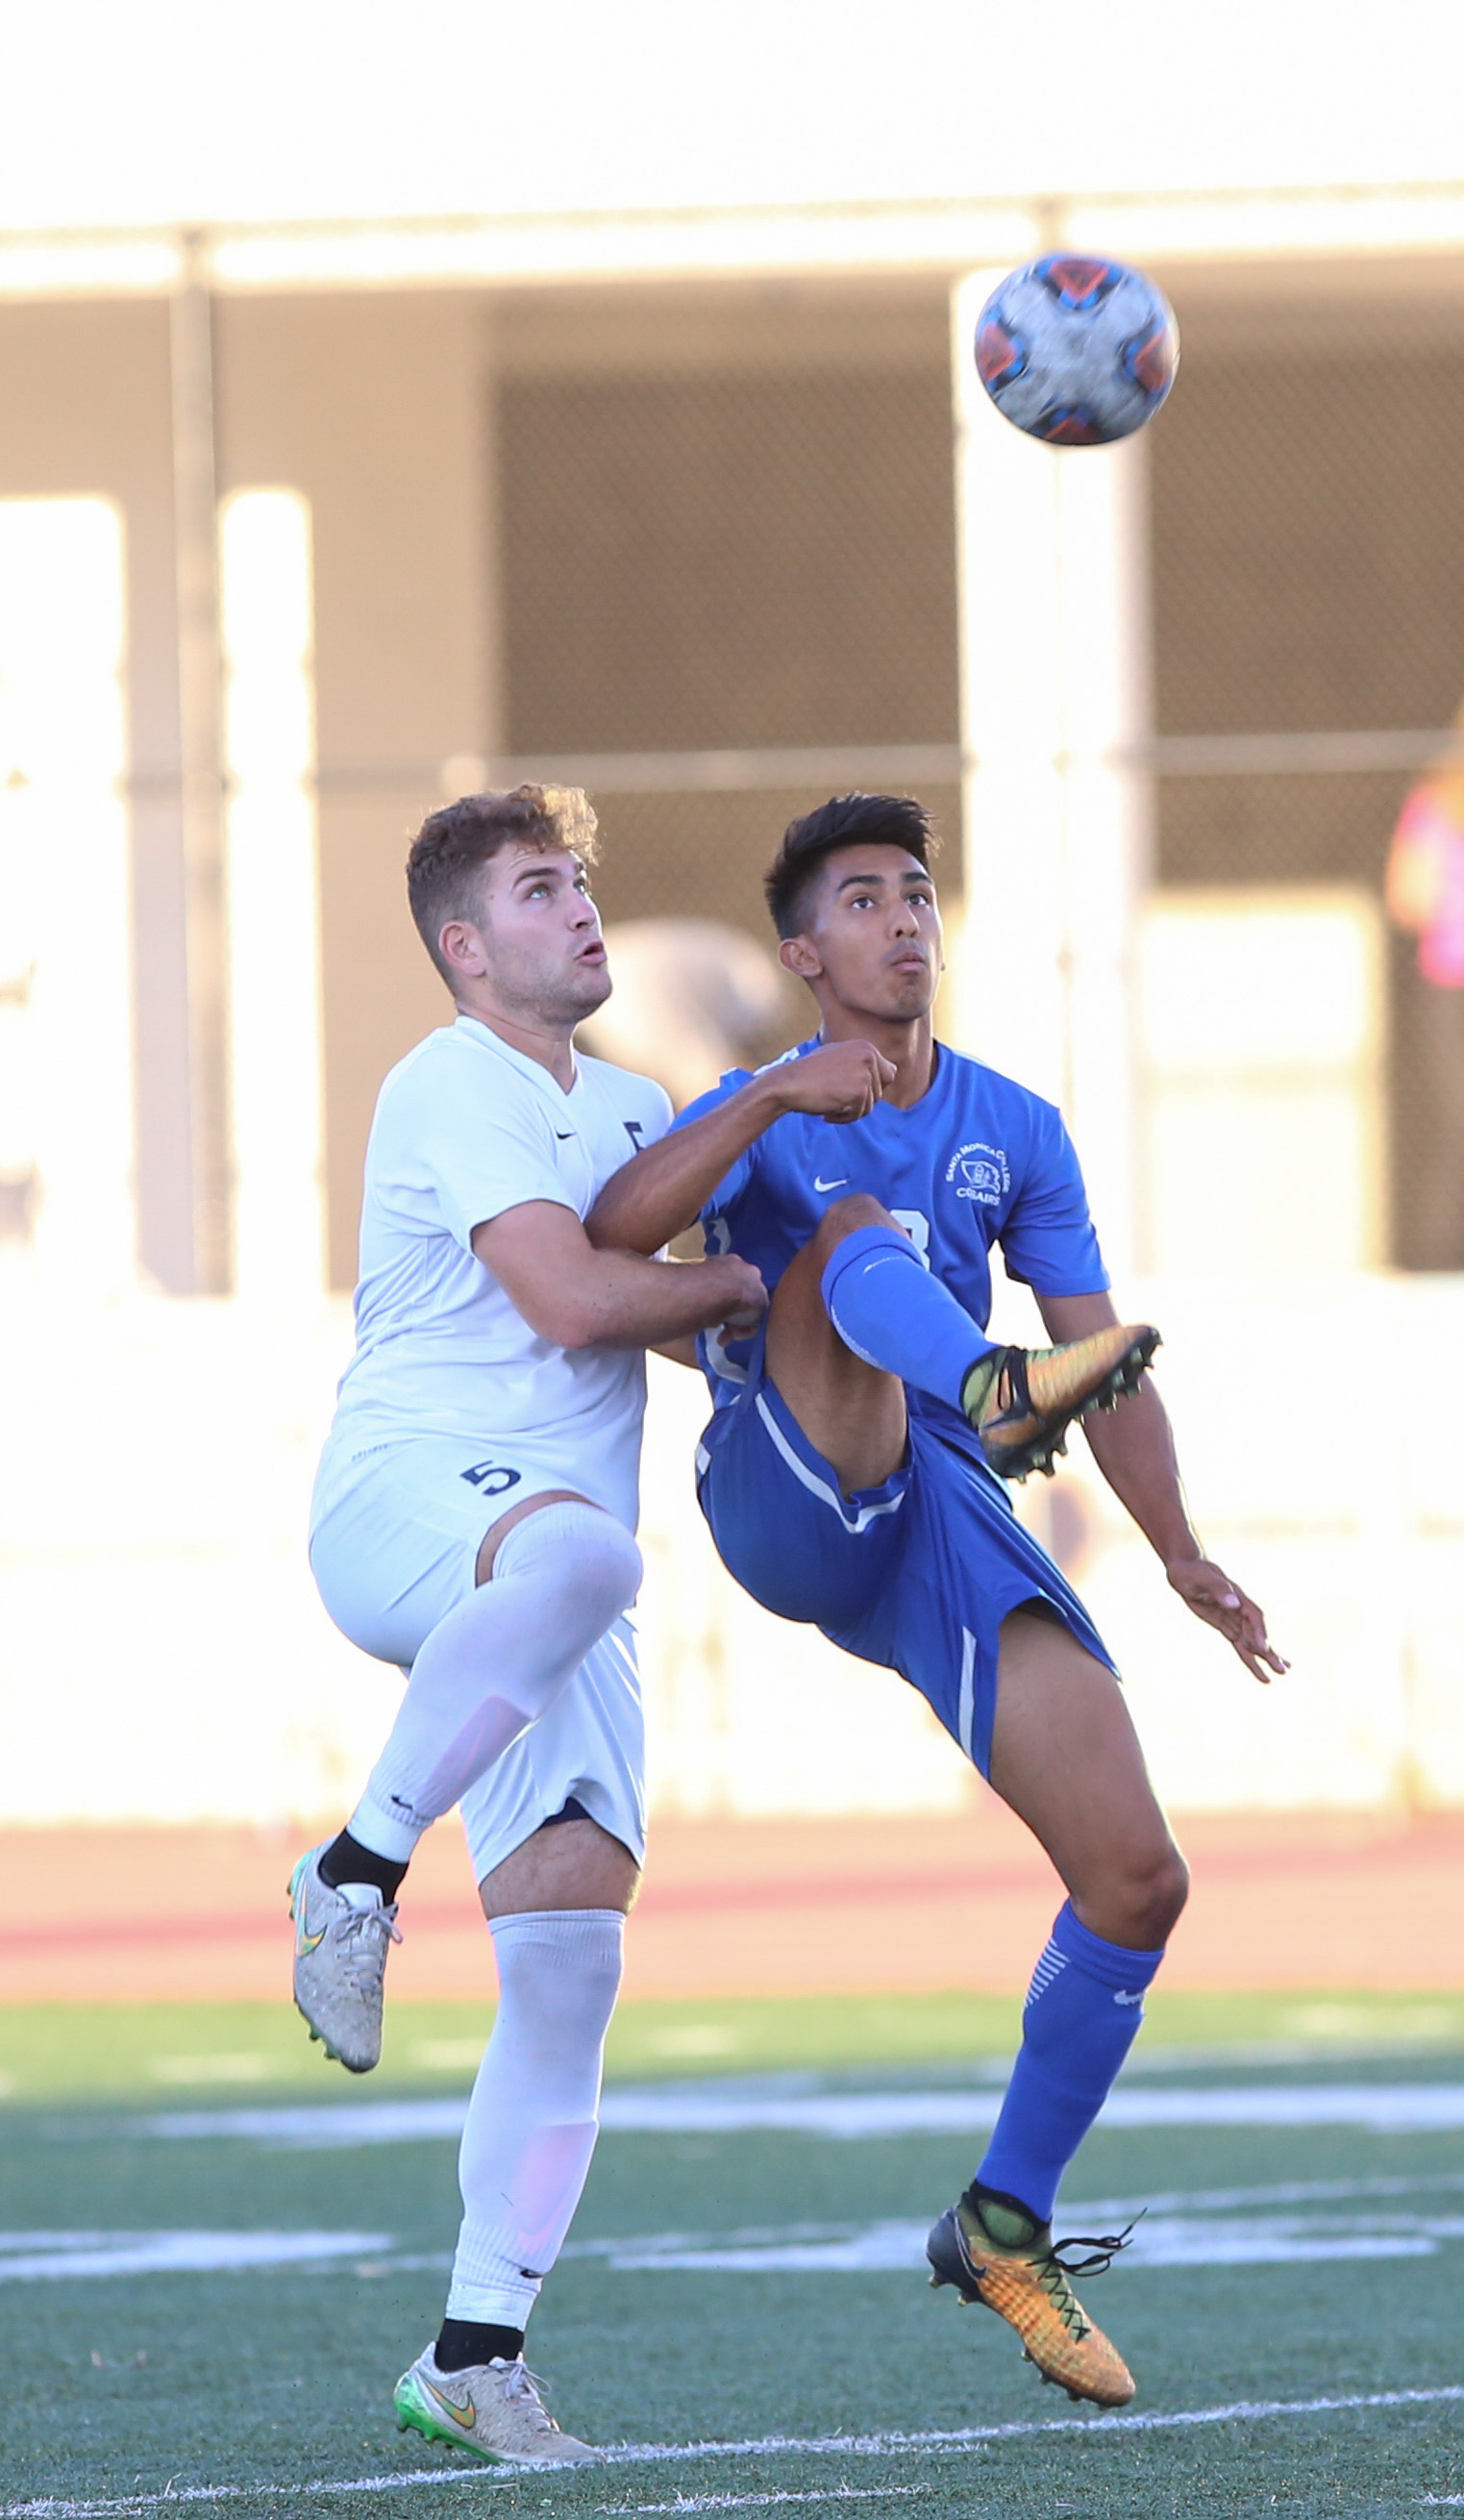 Andy Naidu (8 right) jumps to kick the ball as Elijah Patyk (5 left) lifts up his leg to kick the ball during the soccer game between Santa Monica College's Corsairs and L.A. Mission College's Eagles at the Corsair Stadium at Santa Monica College in Santa Monica, Calif on Tuesday, Nov 7th 2017. The game ended in a win for the Corsairs with a final score of 2-1. (Photo by: Thane Fernandes)